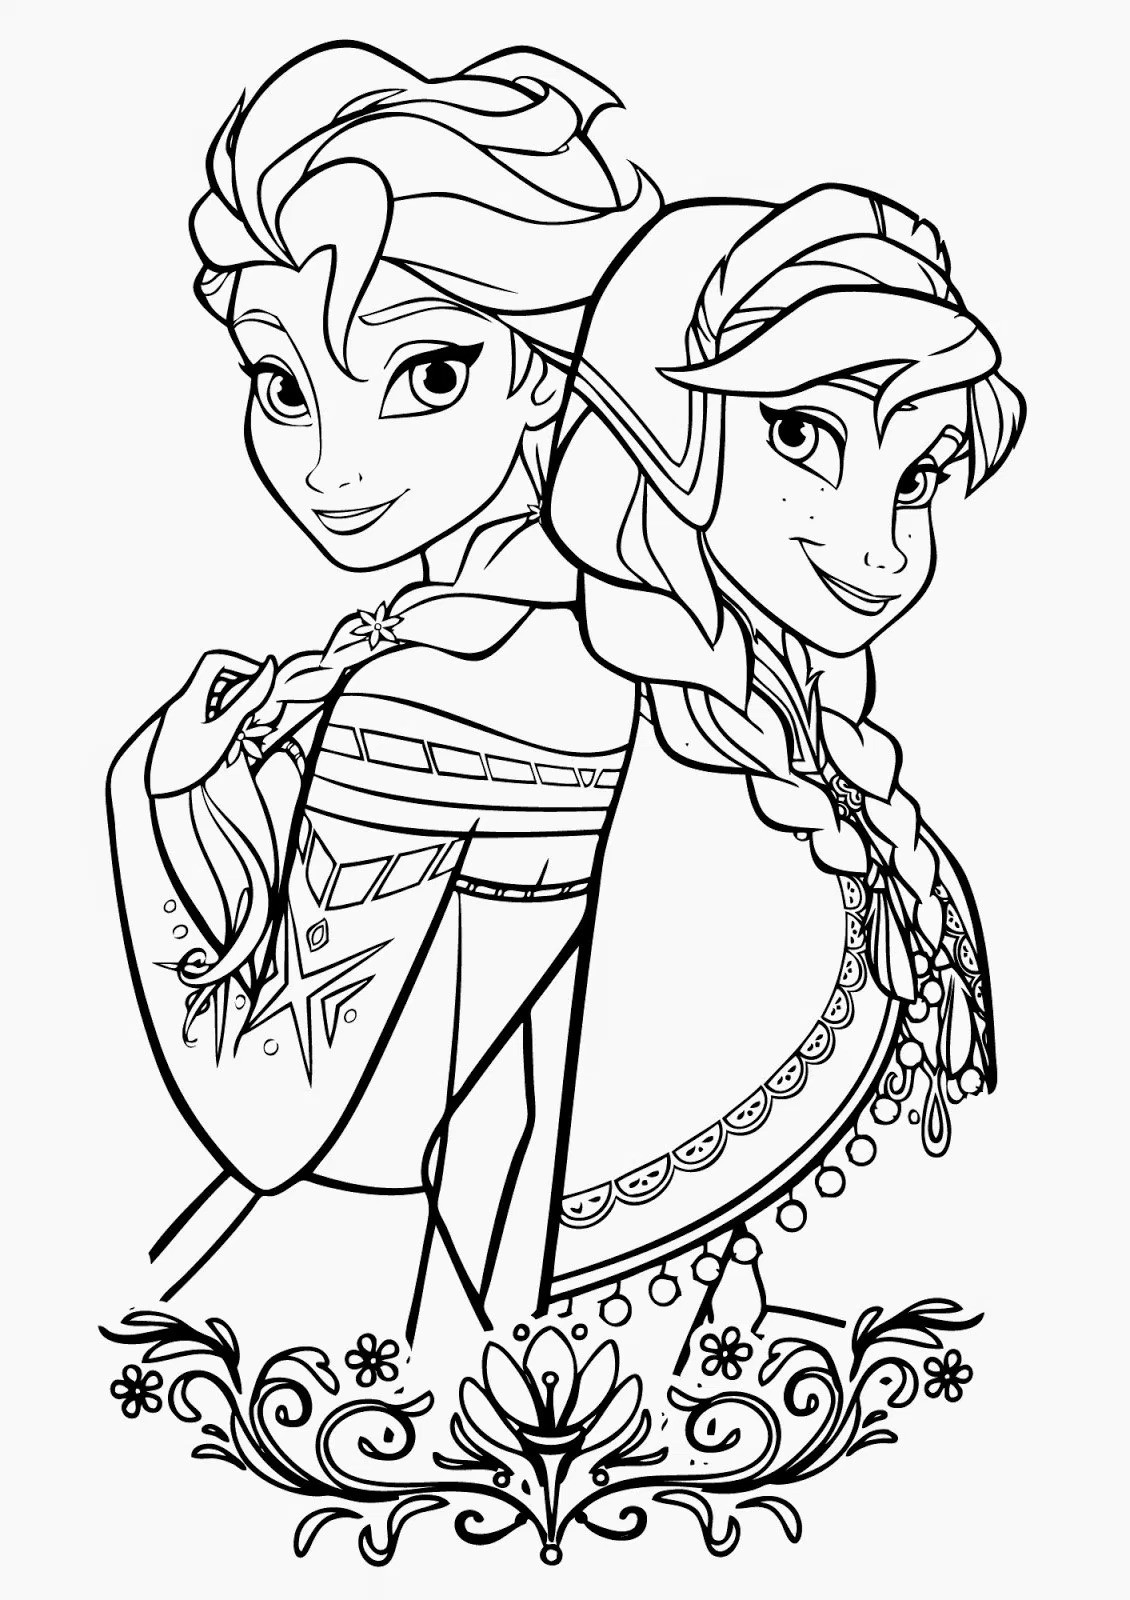 Ausmalbilder Eiskönigin Elsa Und Anna : Disney Drawing Frozen At Getdrawings Com Free For Personal Use